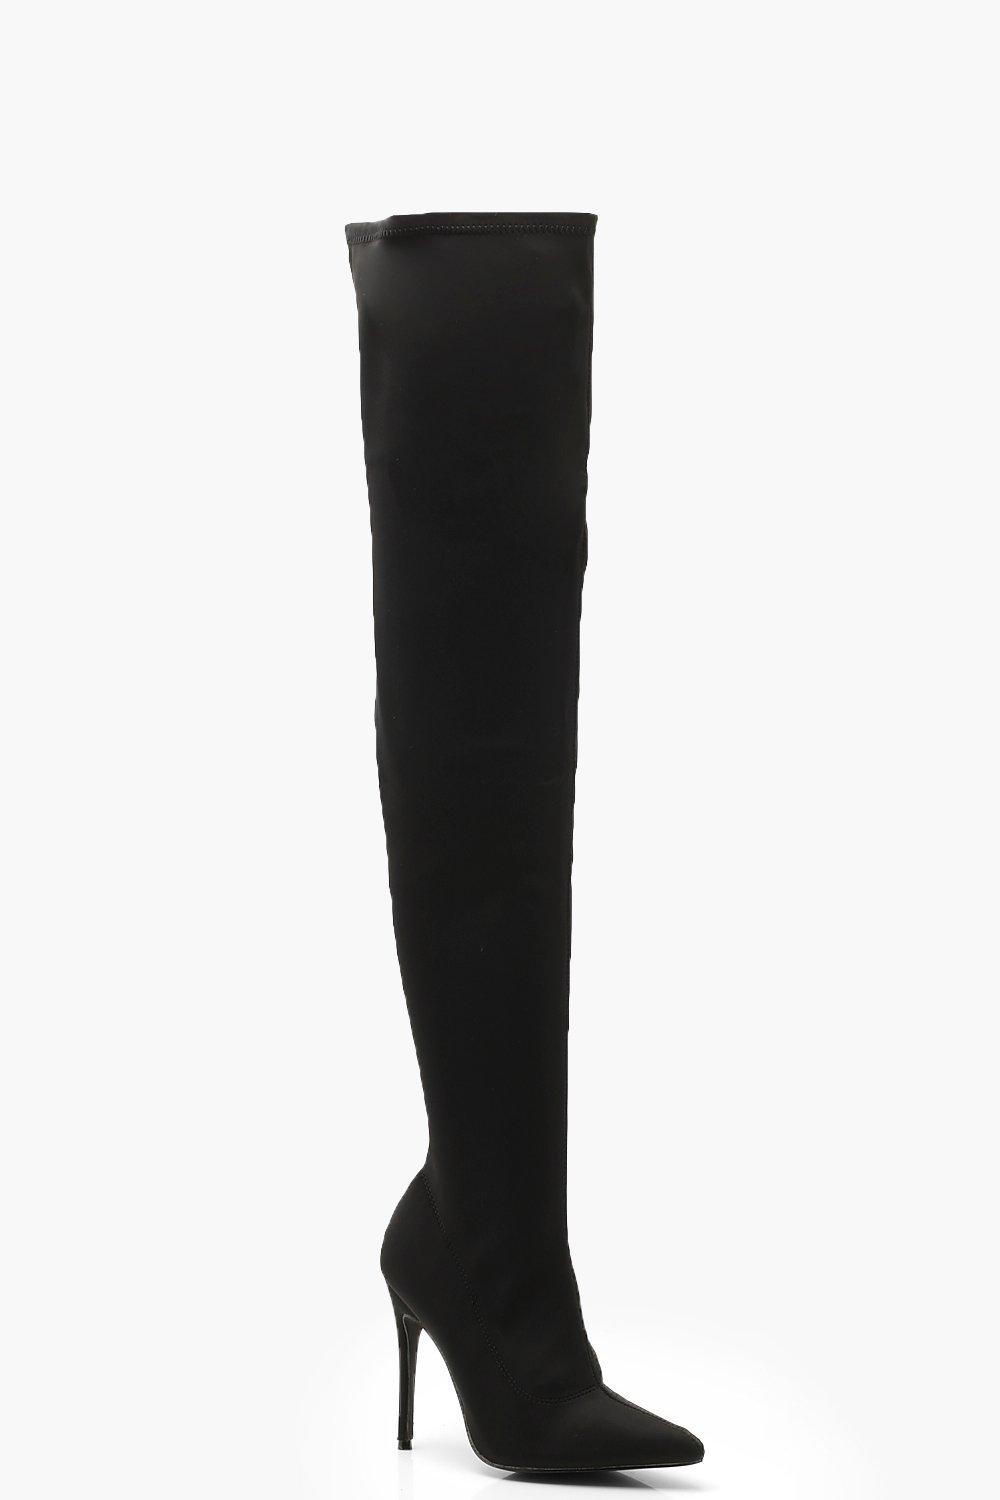 58f2ad389a7 Stiletto Pointed Toe Over The Knee Boots | Boohoo